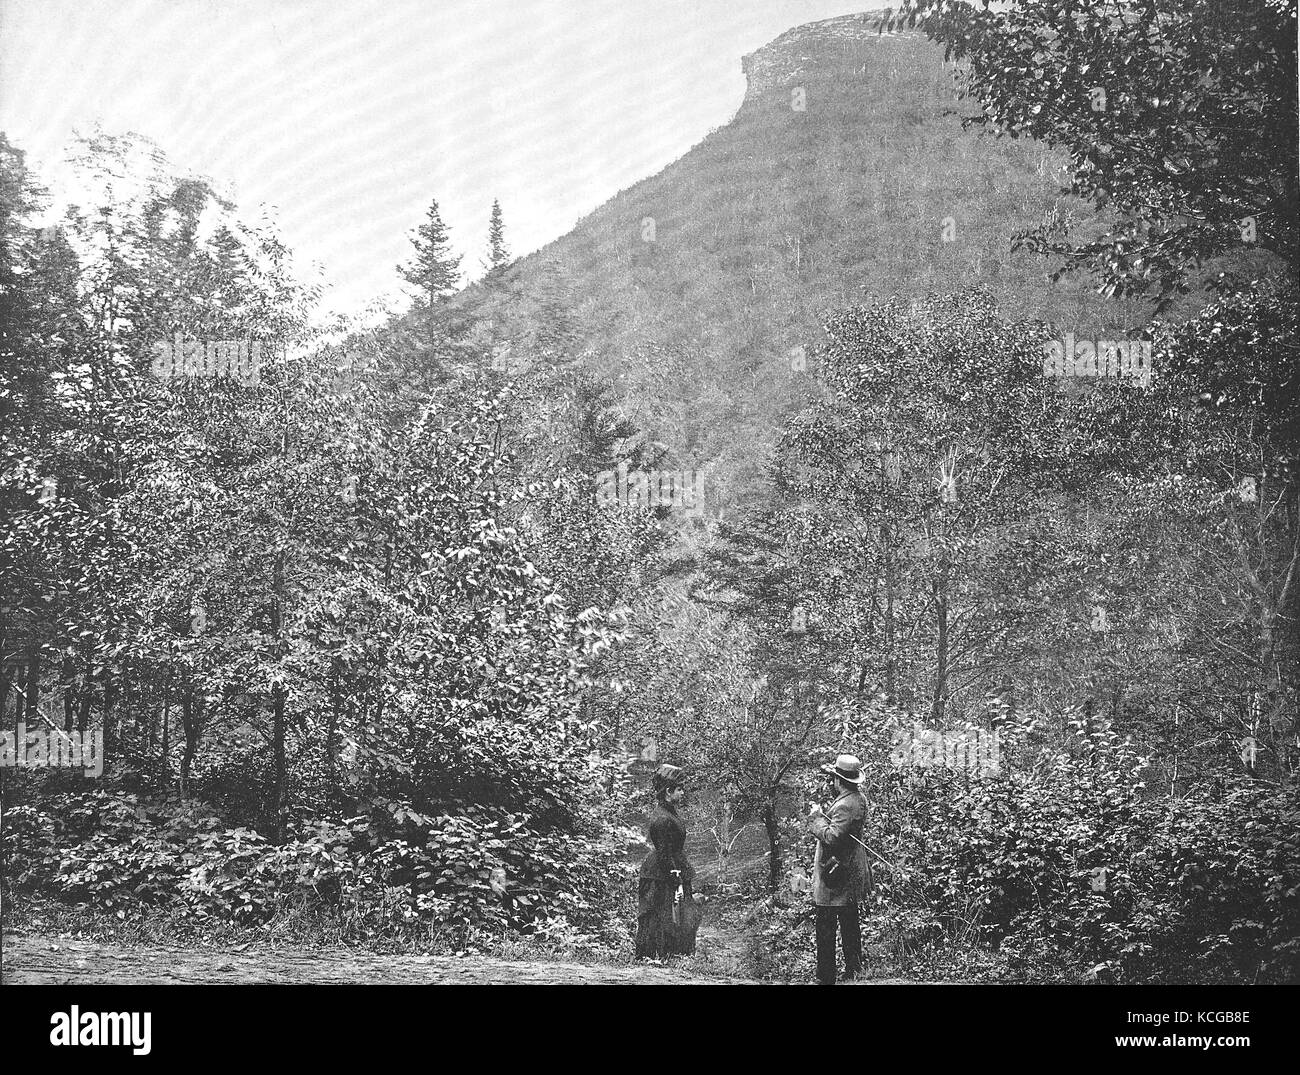 United States of America, New Hampshire, Man and woman standing in front of the Franconia Mountains, the upper part - Stock Image